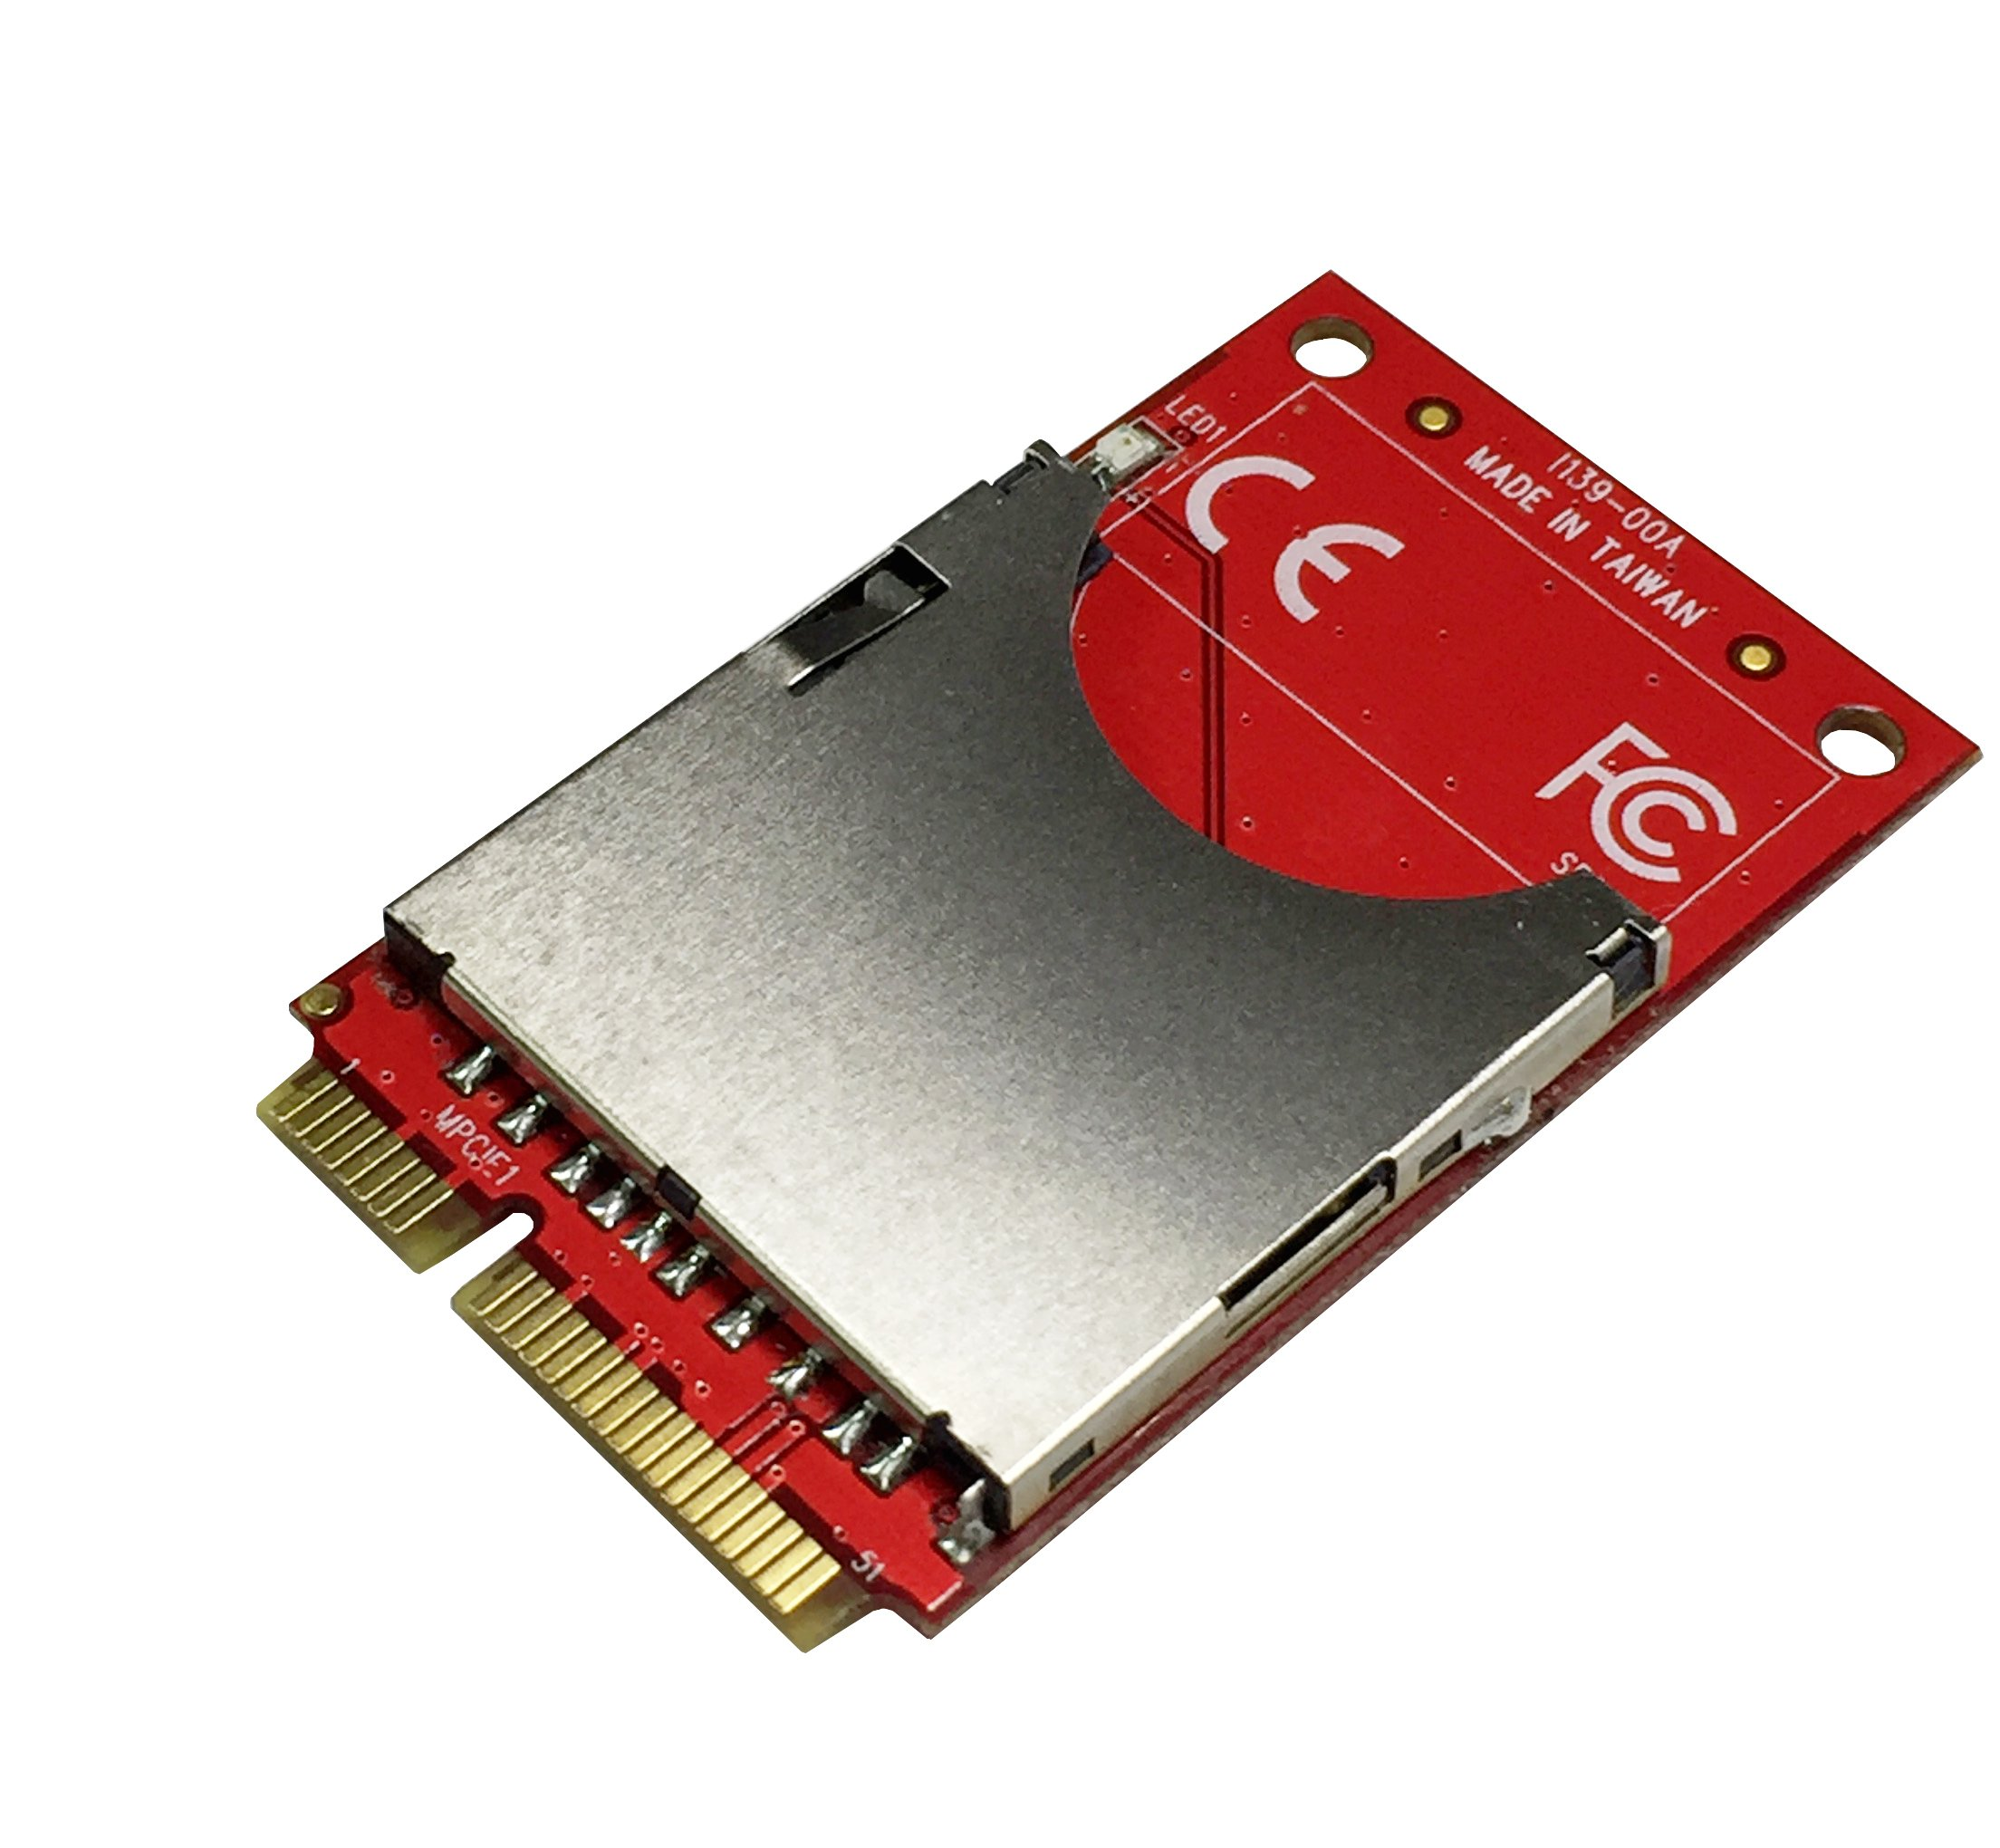 Ableconn MPEX-139P Mini PCIe Adapter with SD Socket - Support SD 3.0 (SDXC) via Mini PCI Express by Ableconn